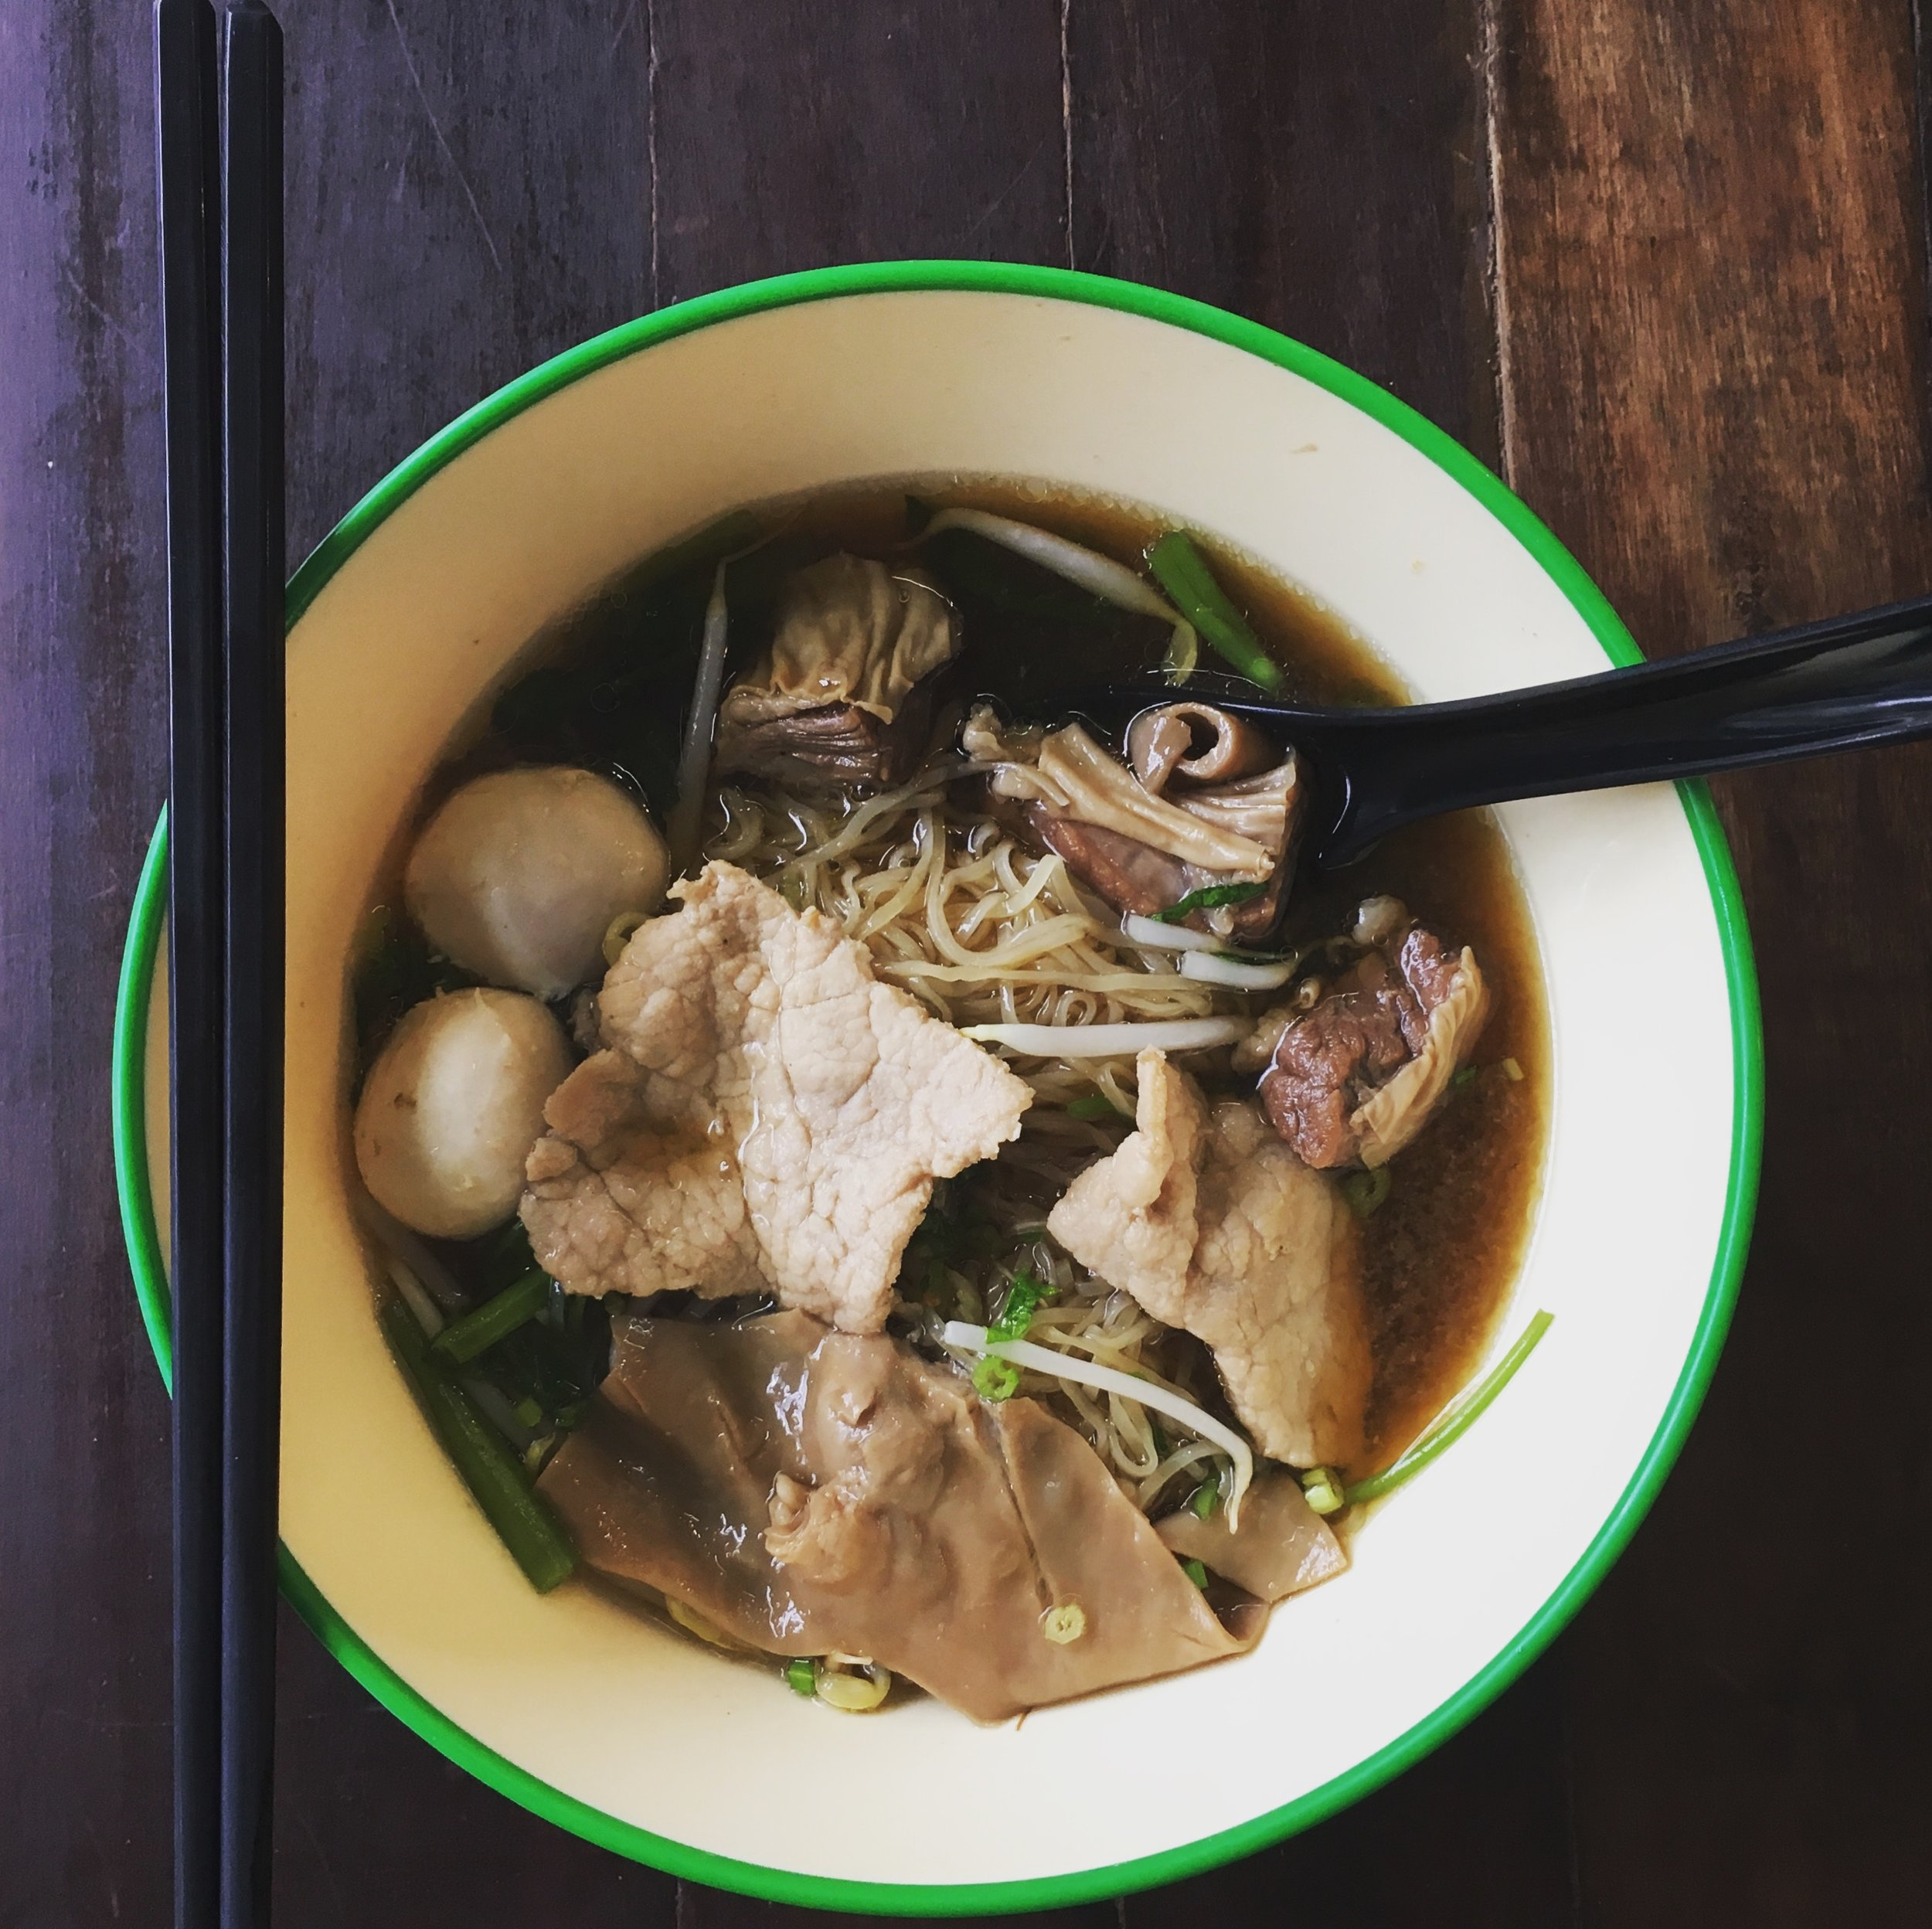 Pork and beef noodle soup. An incredibly satisfying bowl of noodles, meat and broth.